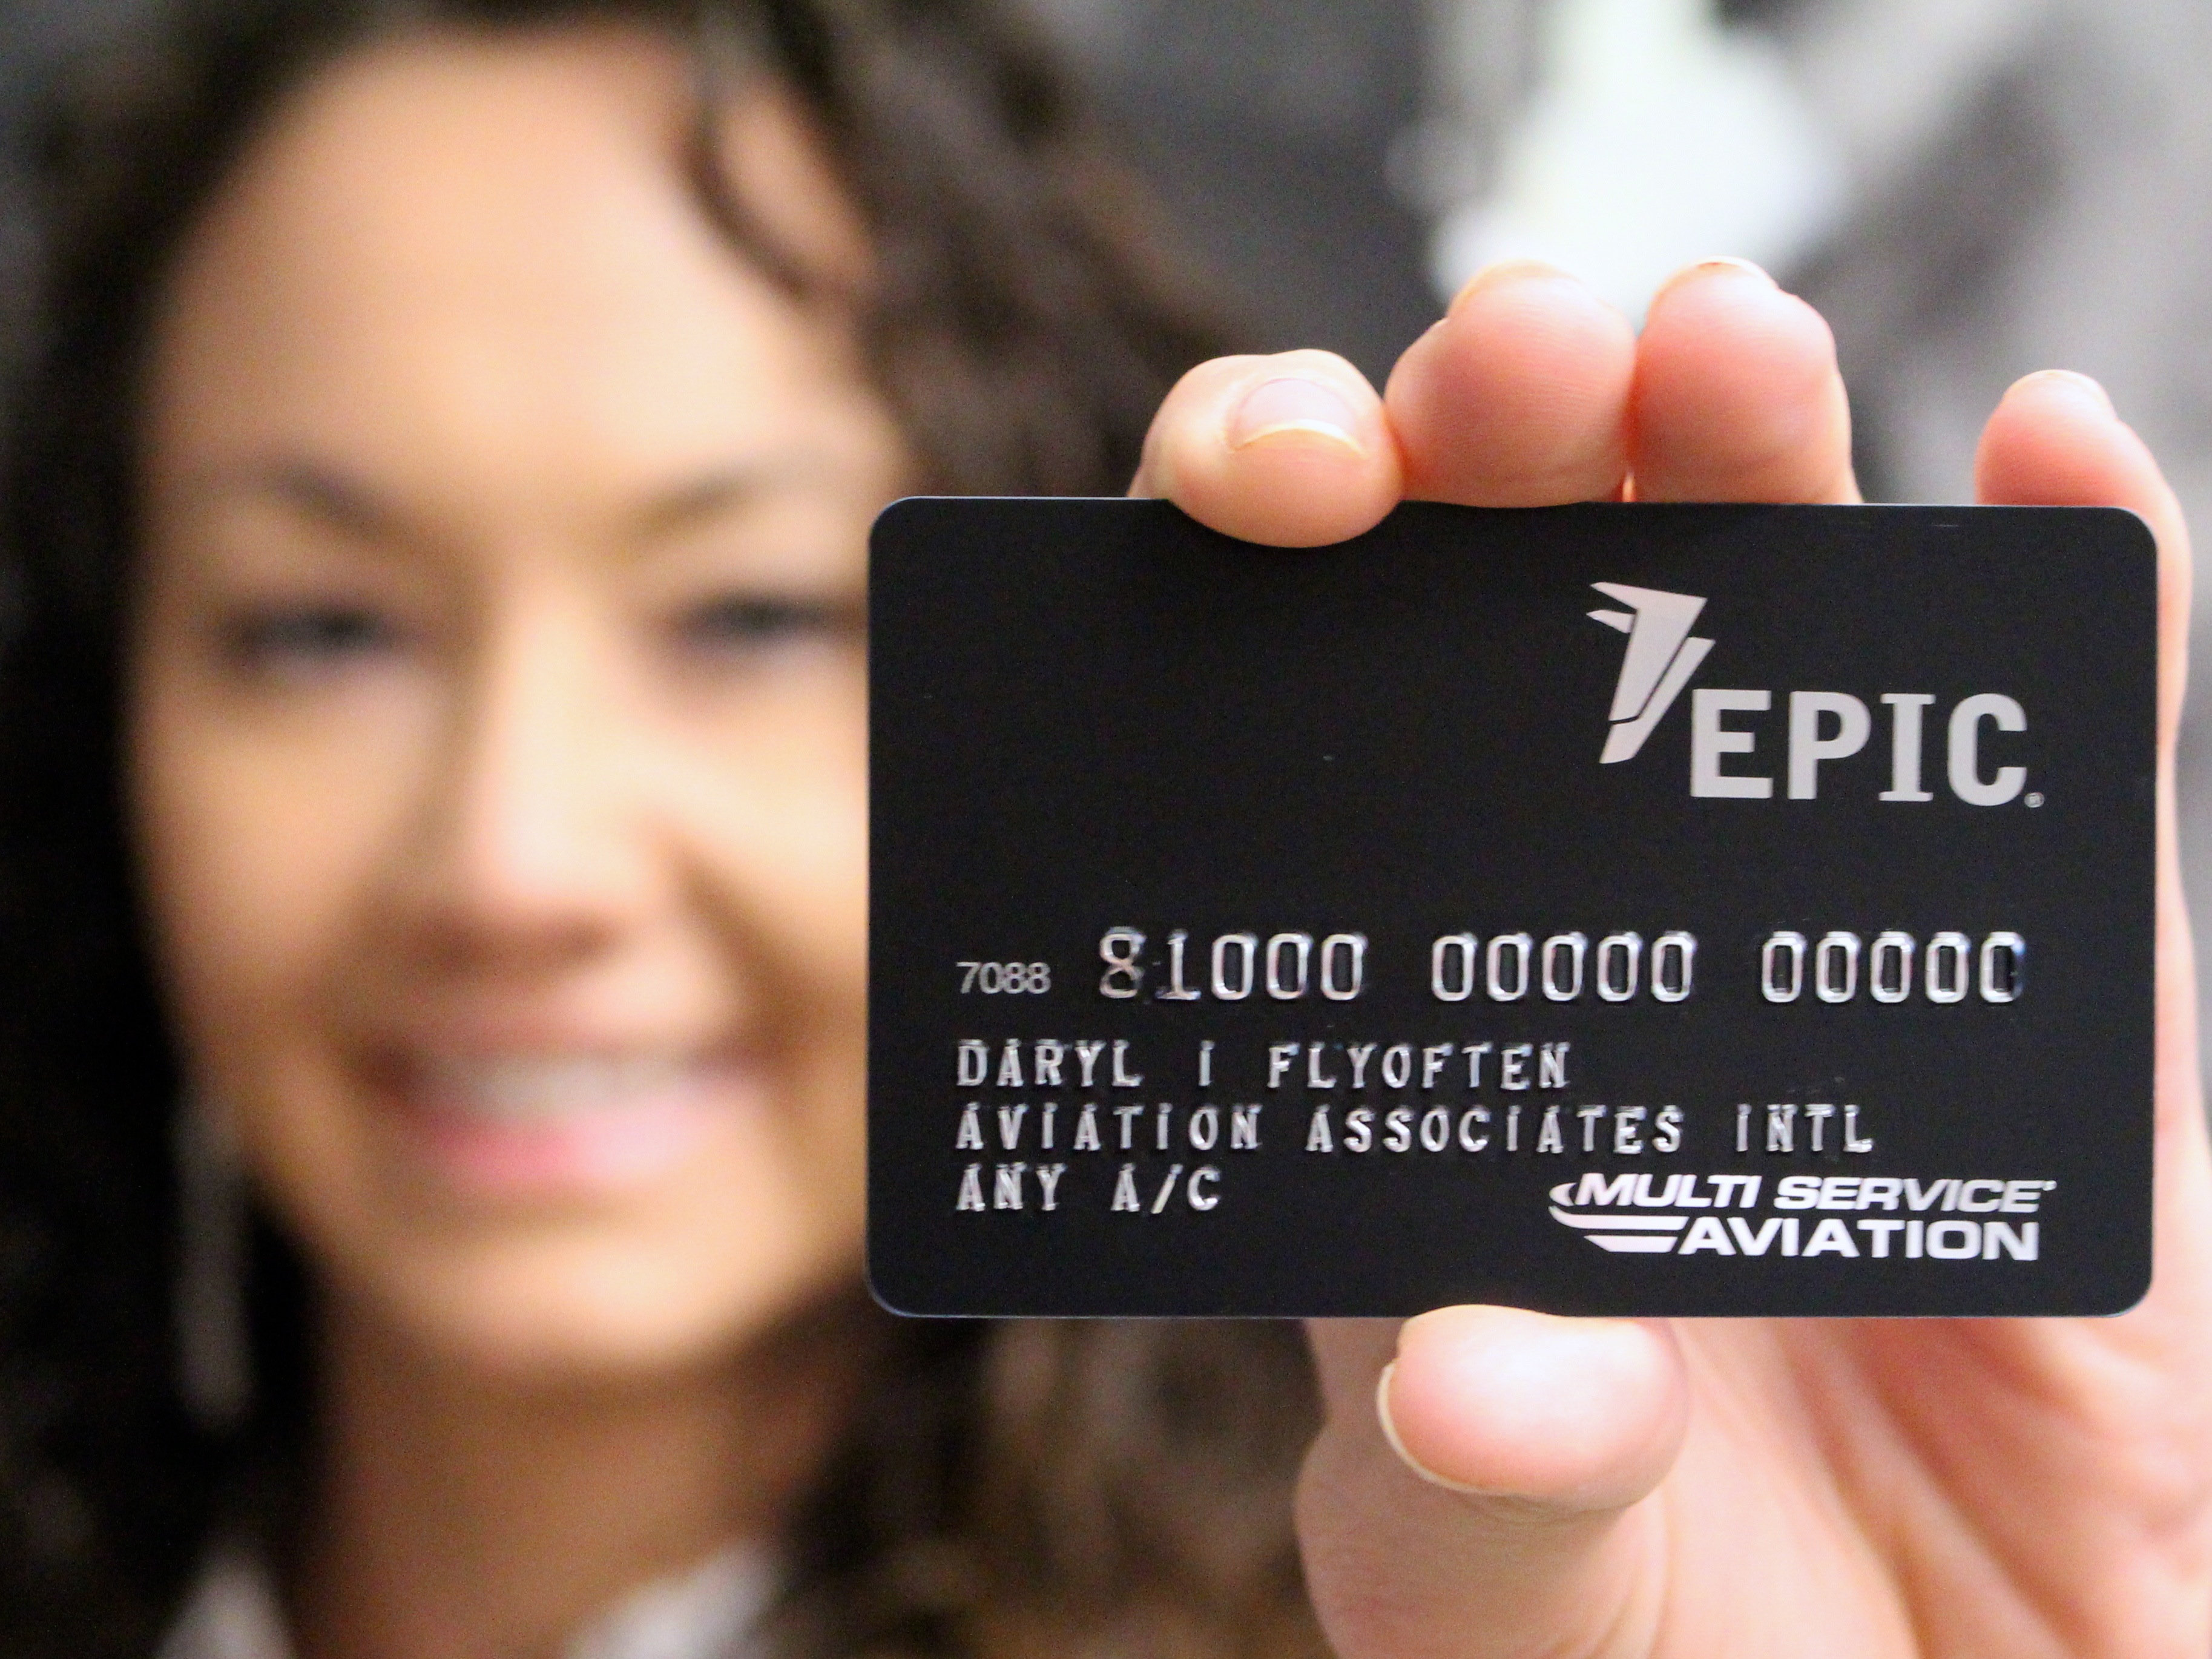 Tiffin Aviation Services Now Accepting the EPIC Card